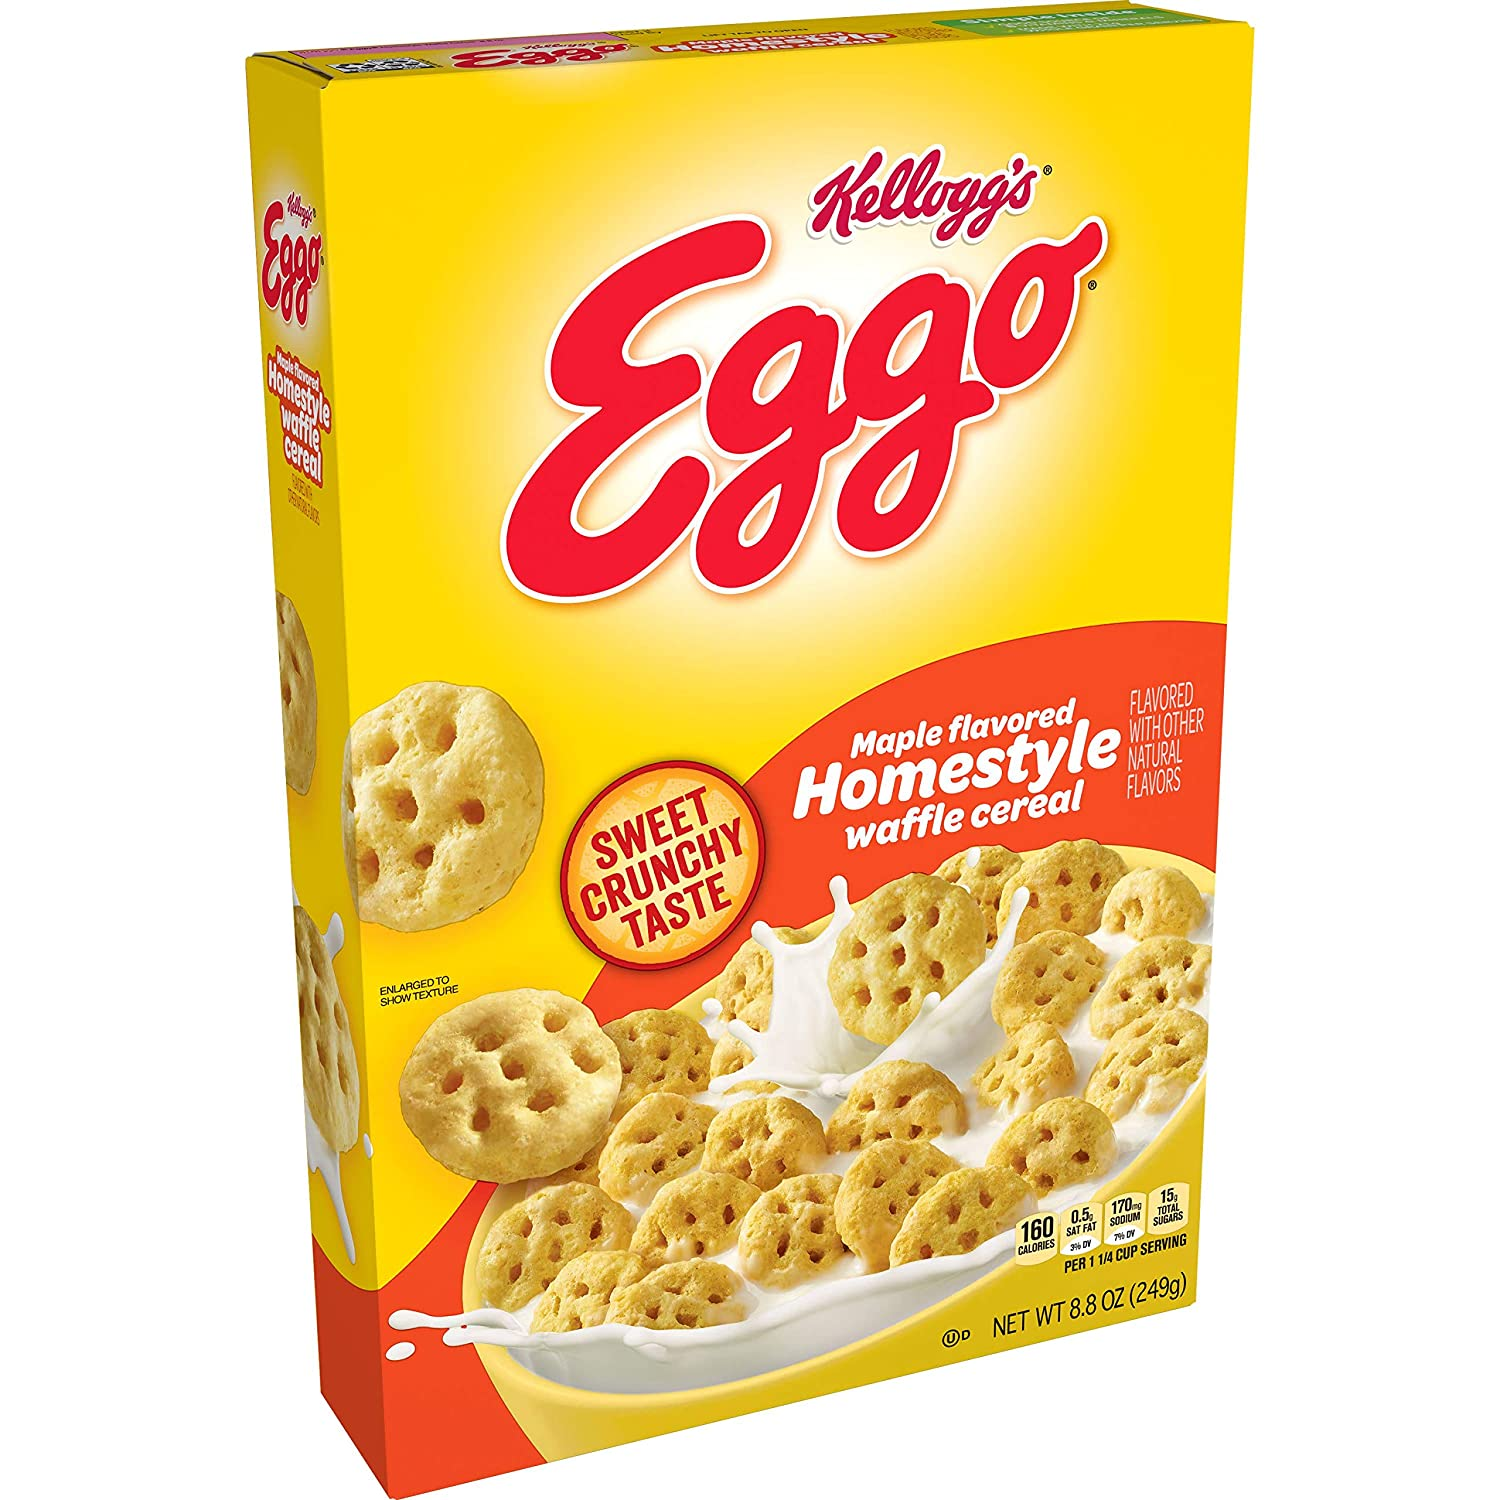 Kellogg's Eggo Breakfast Cereal Max 41% OFF Homestyle Max 73% OFF Flavored Waffl Maple